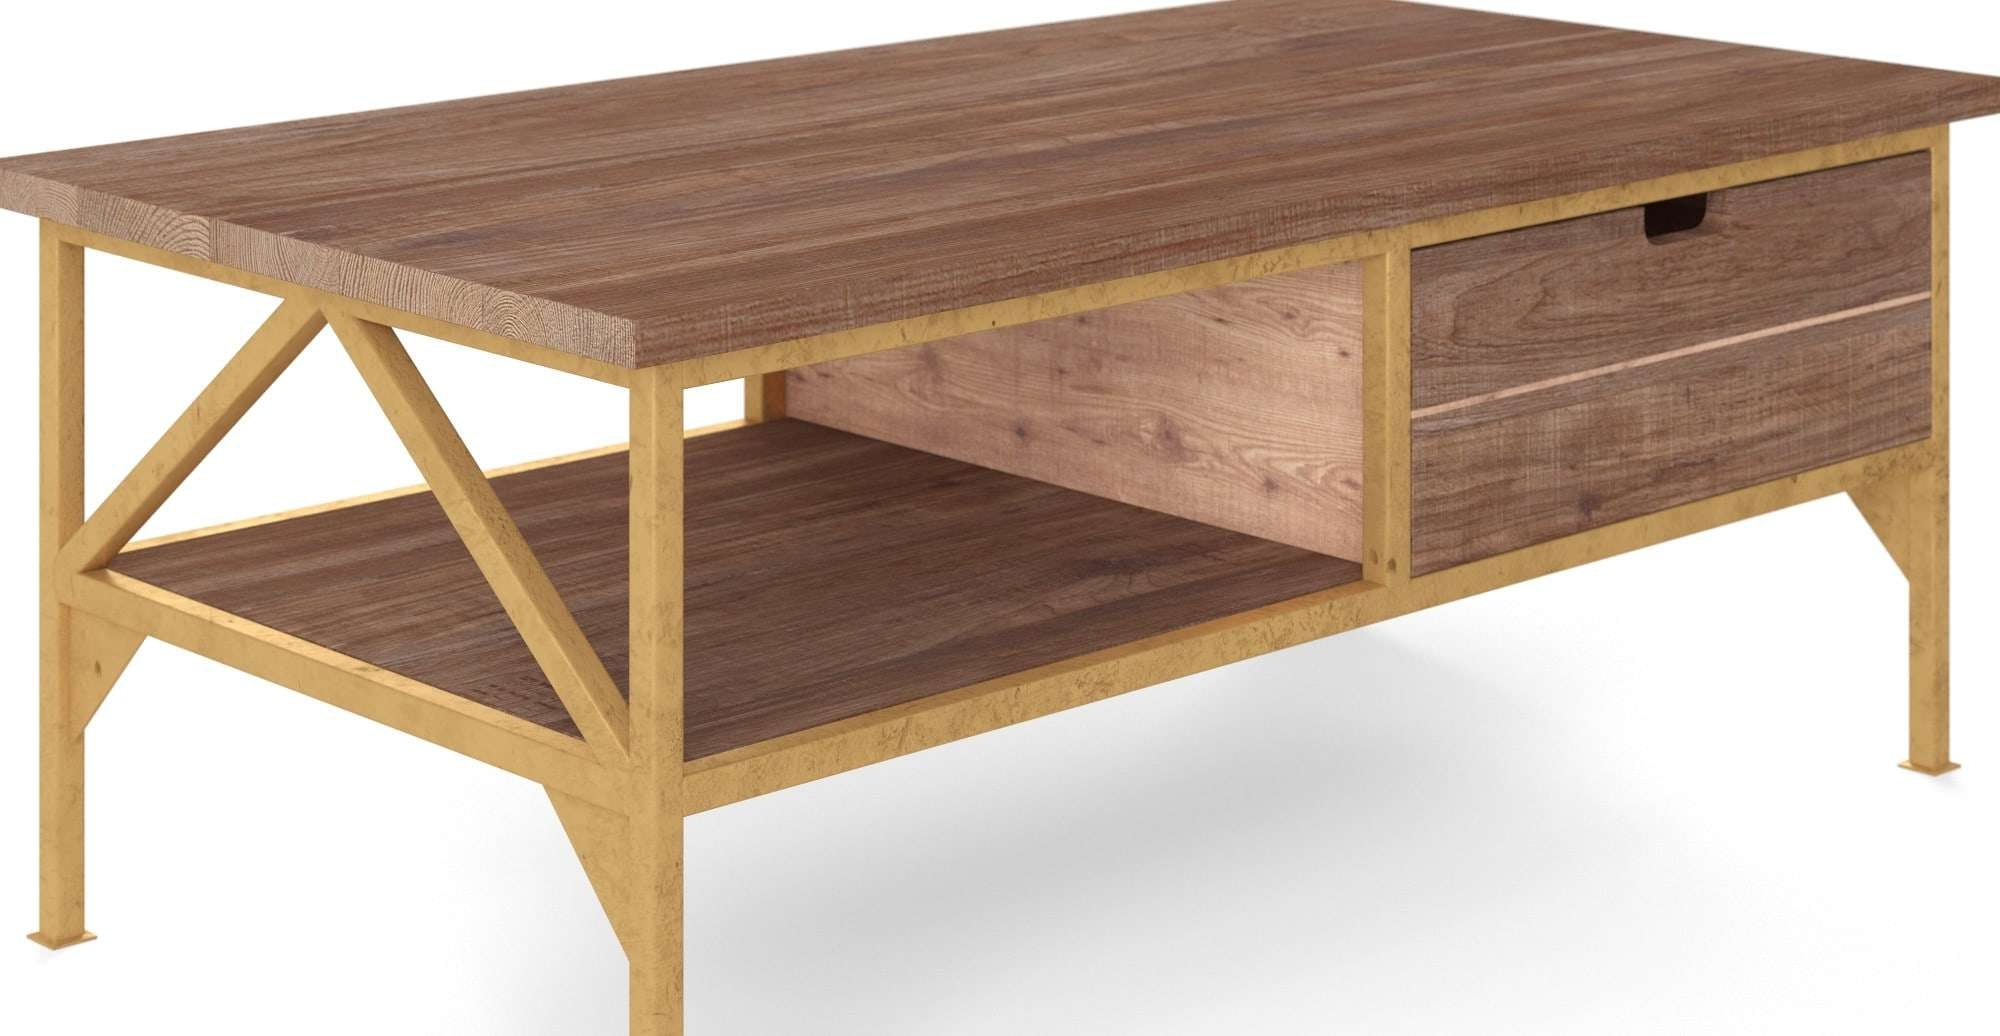 Most Up To Date Pine Coffee Tables With Storage For Coffee Table : Fabulous Pine Coffee Table Round Coffee Table With (View 20 of 20)